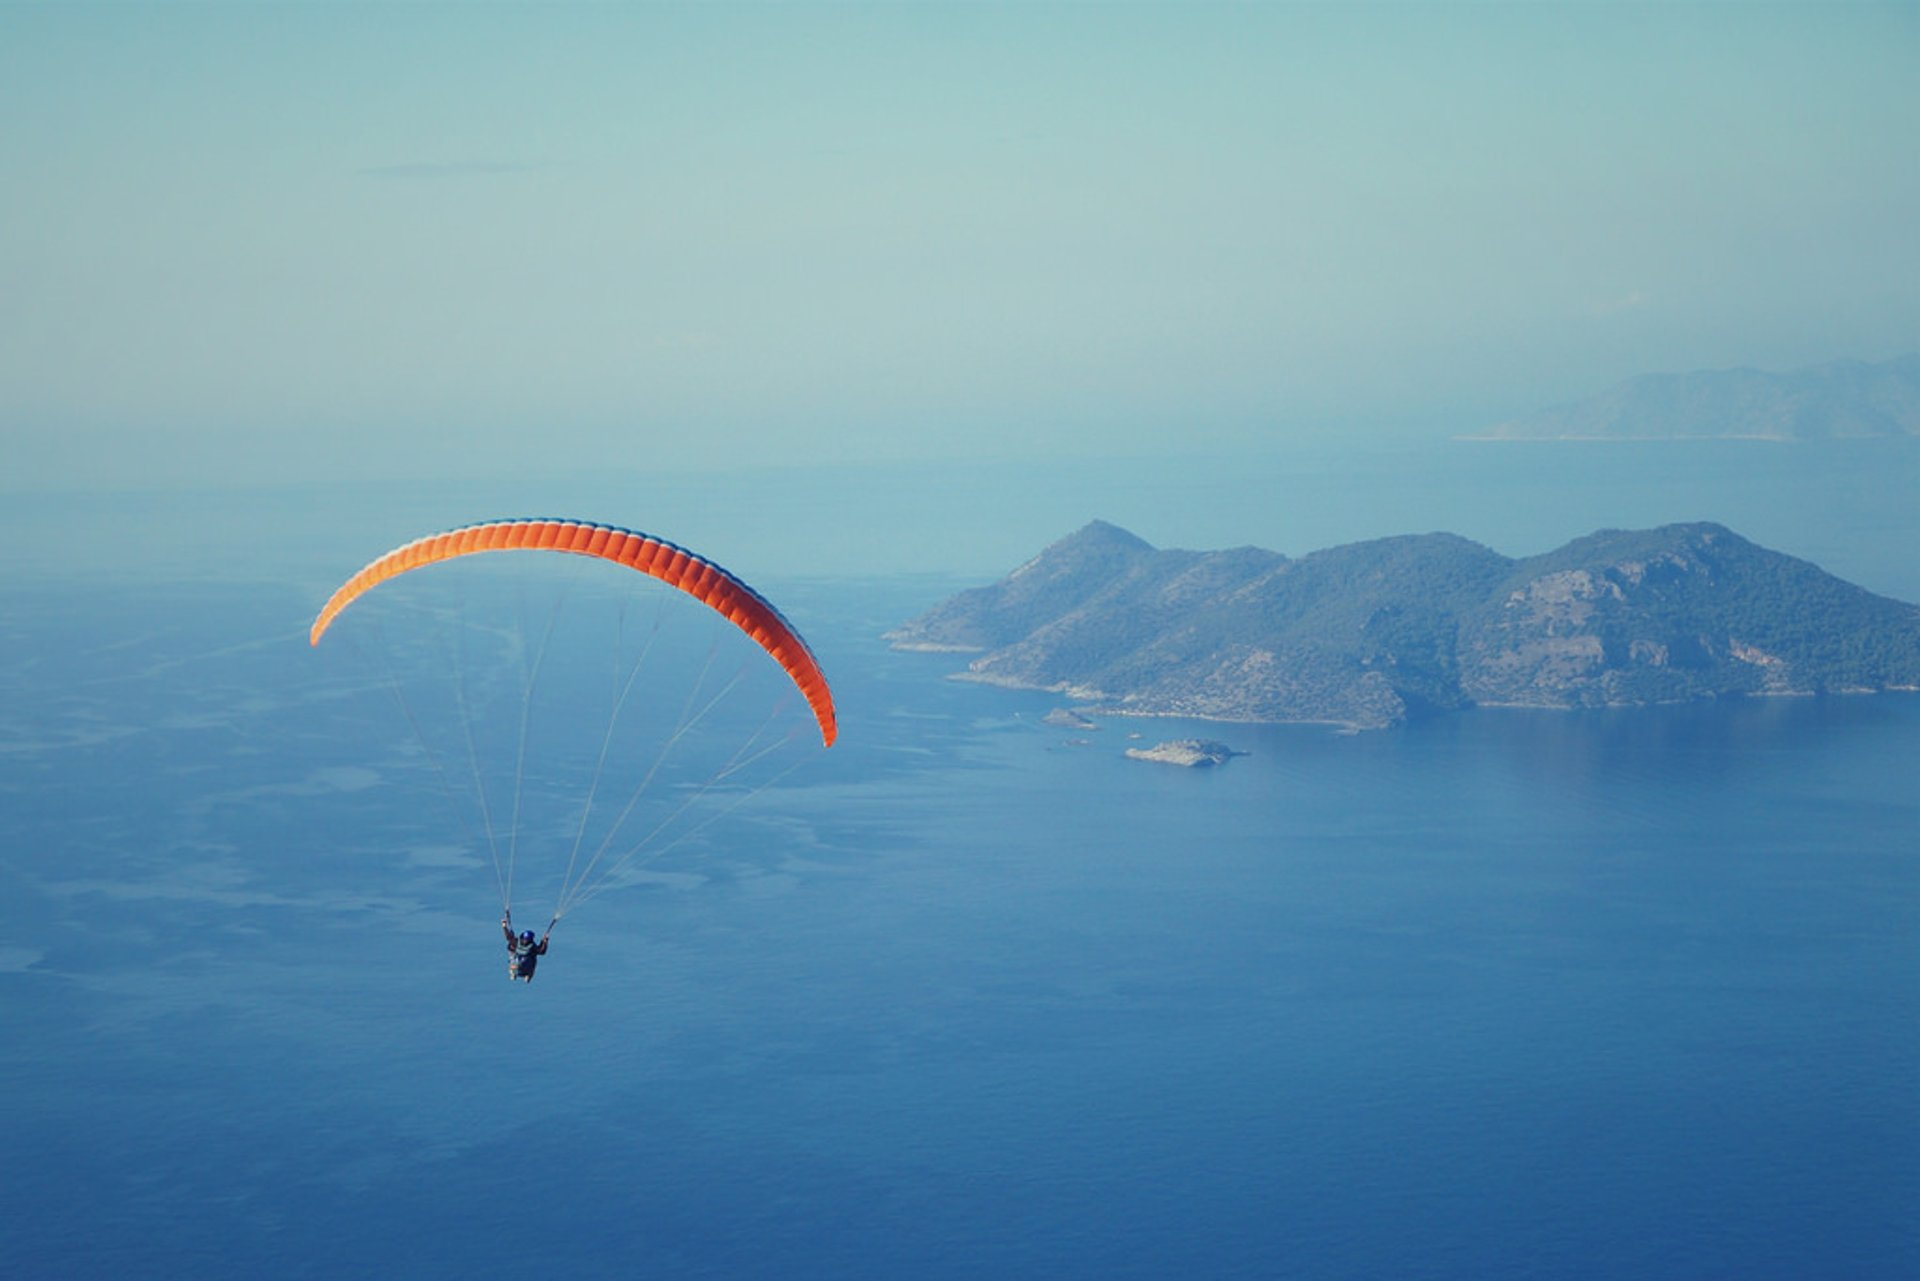 Paragliding in Turkey 2020 - Best Time